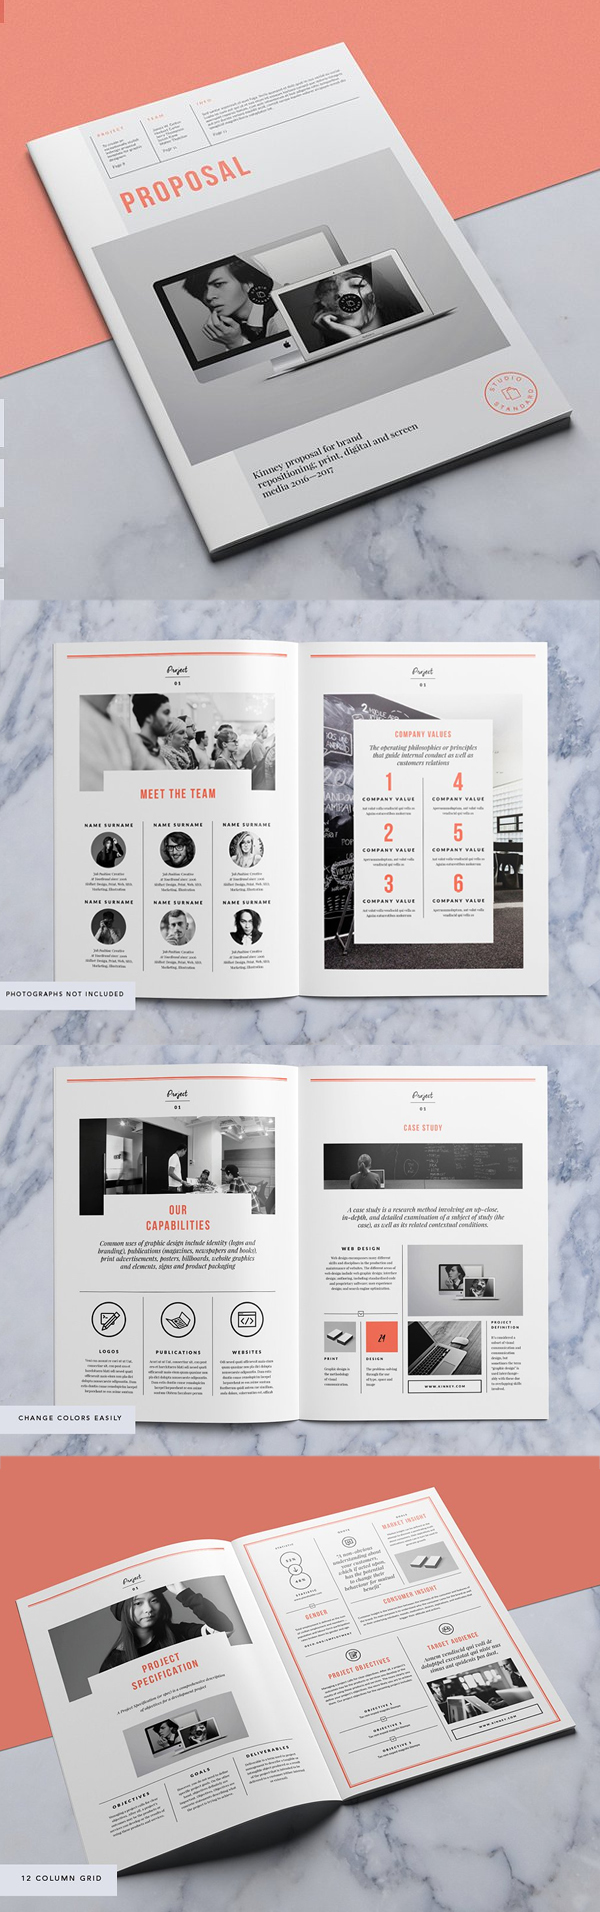 Professional Business Proposal Templates Design - 6